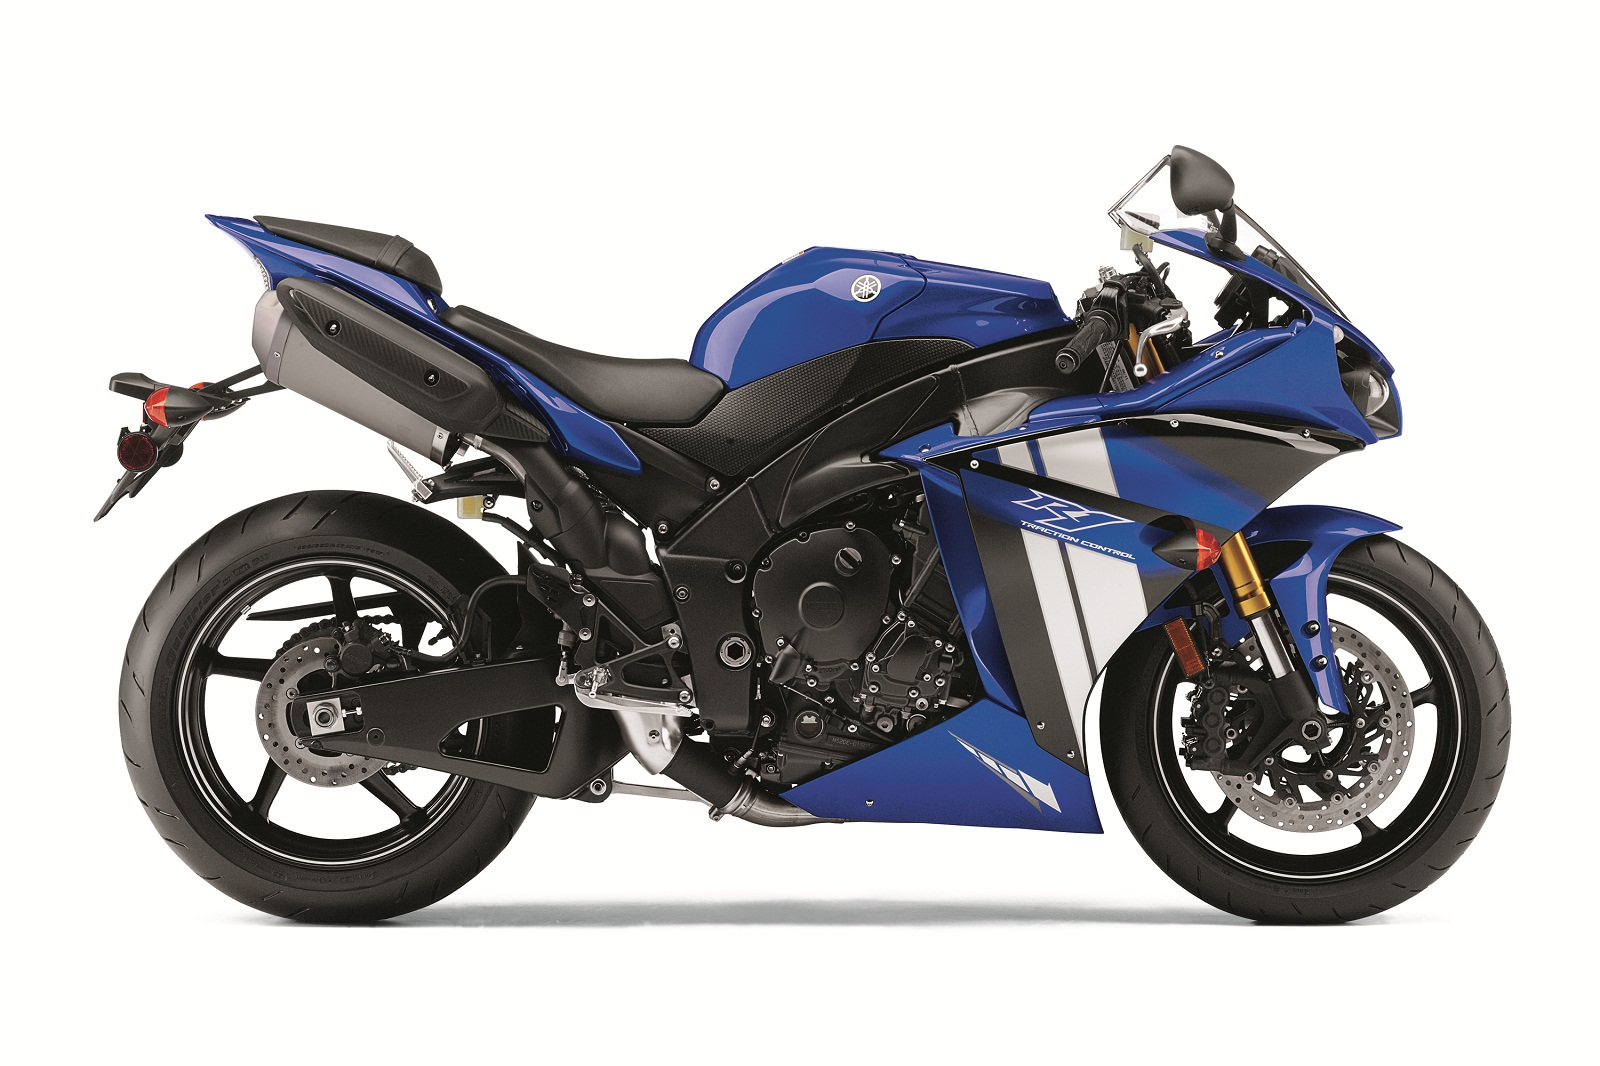 2012 Yamaha YZF-R1 Review - Top Speed